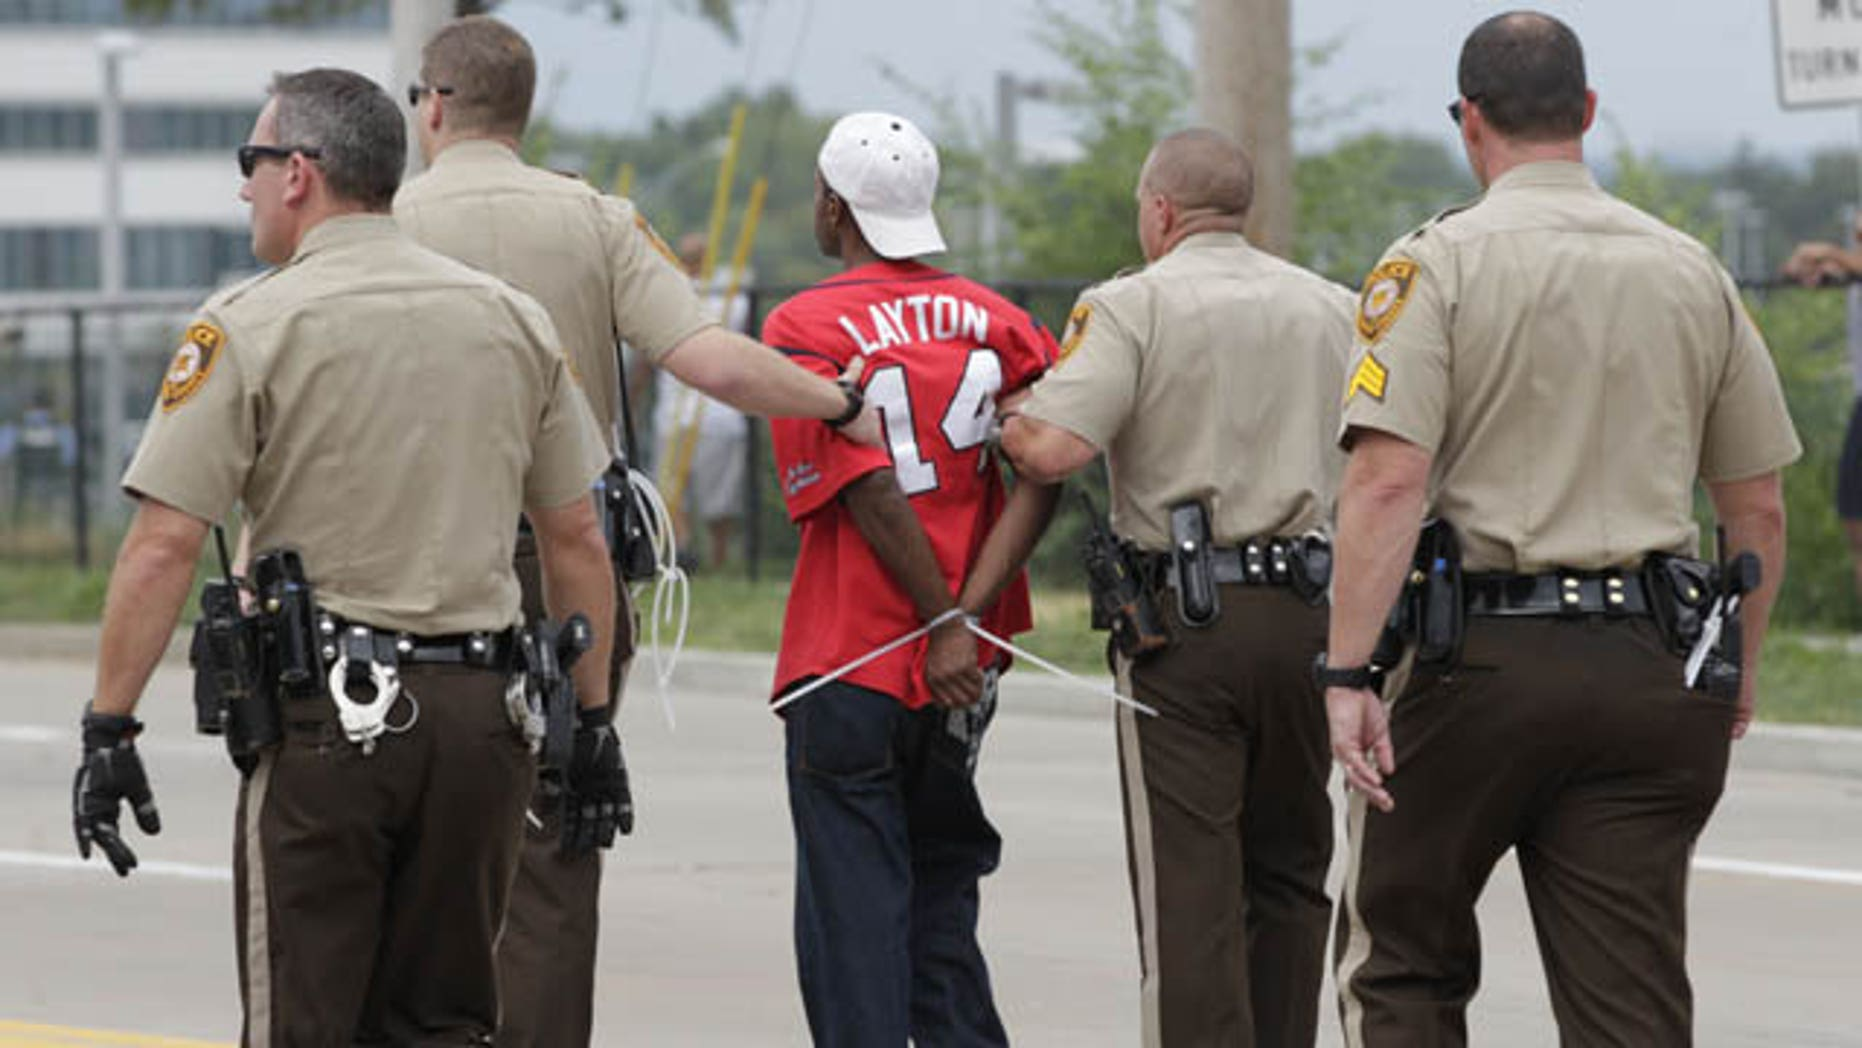 September 10, 2014: Police arrest a protester after he refused to leave the area of a protest aimed at shutting down Interstate 70 in Berkeley, Mo., near the St. Louis suburb of Ferguson, Mo. where Michael Brown, an unarmed, black 18-year old was shot and killed by a white police officer on Aug. 9. (AP Photo/Tom Gannam)